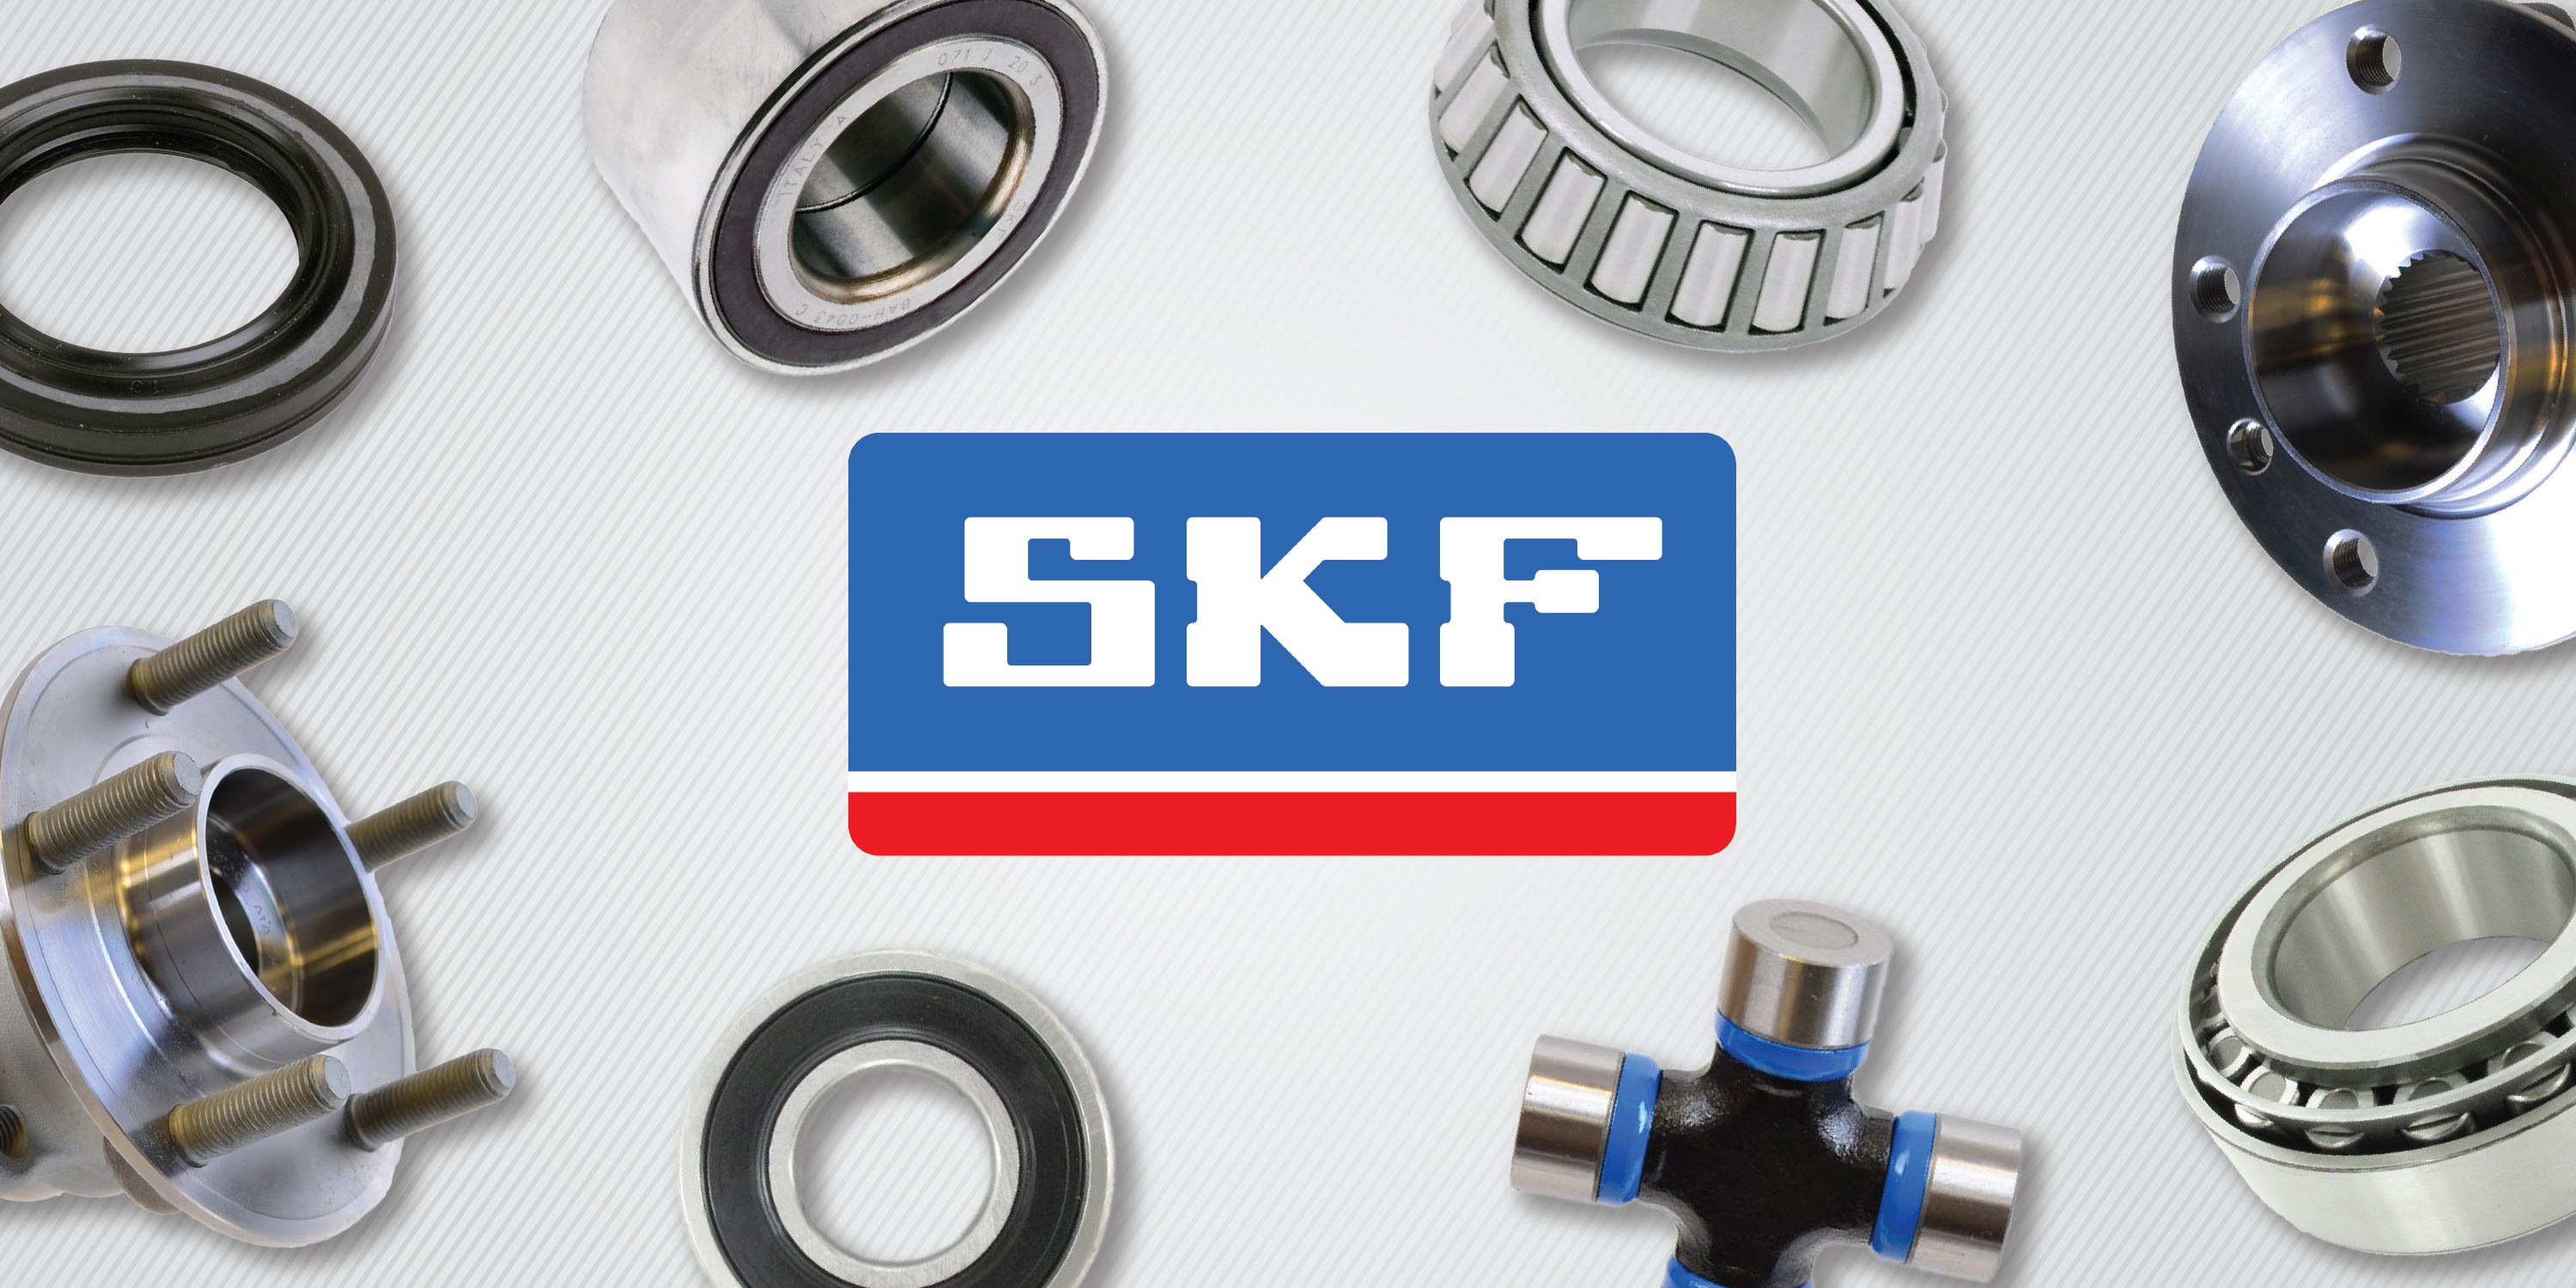 SKF Front Outer Axle Shaft Seal for 1999-2004 Ford F-250 Super Duty Sealing Gaskets